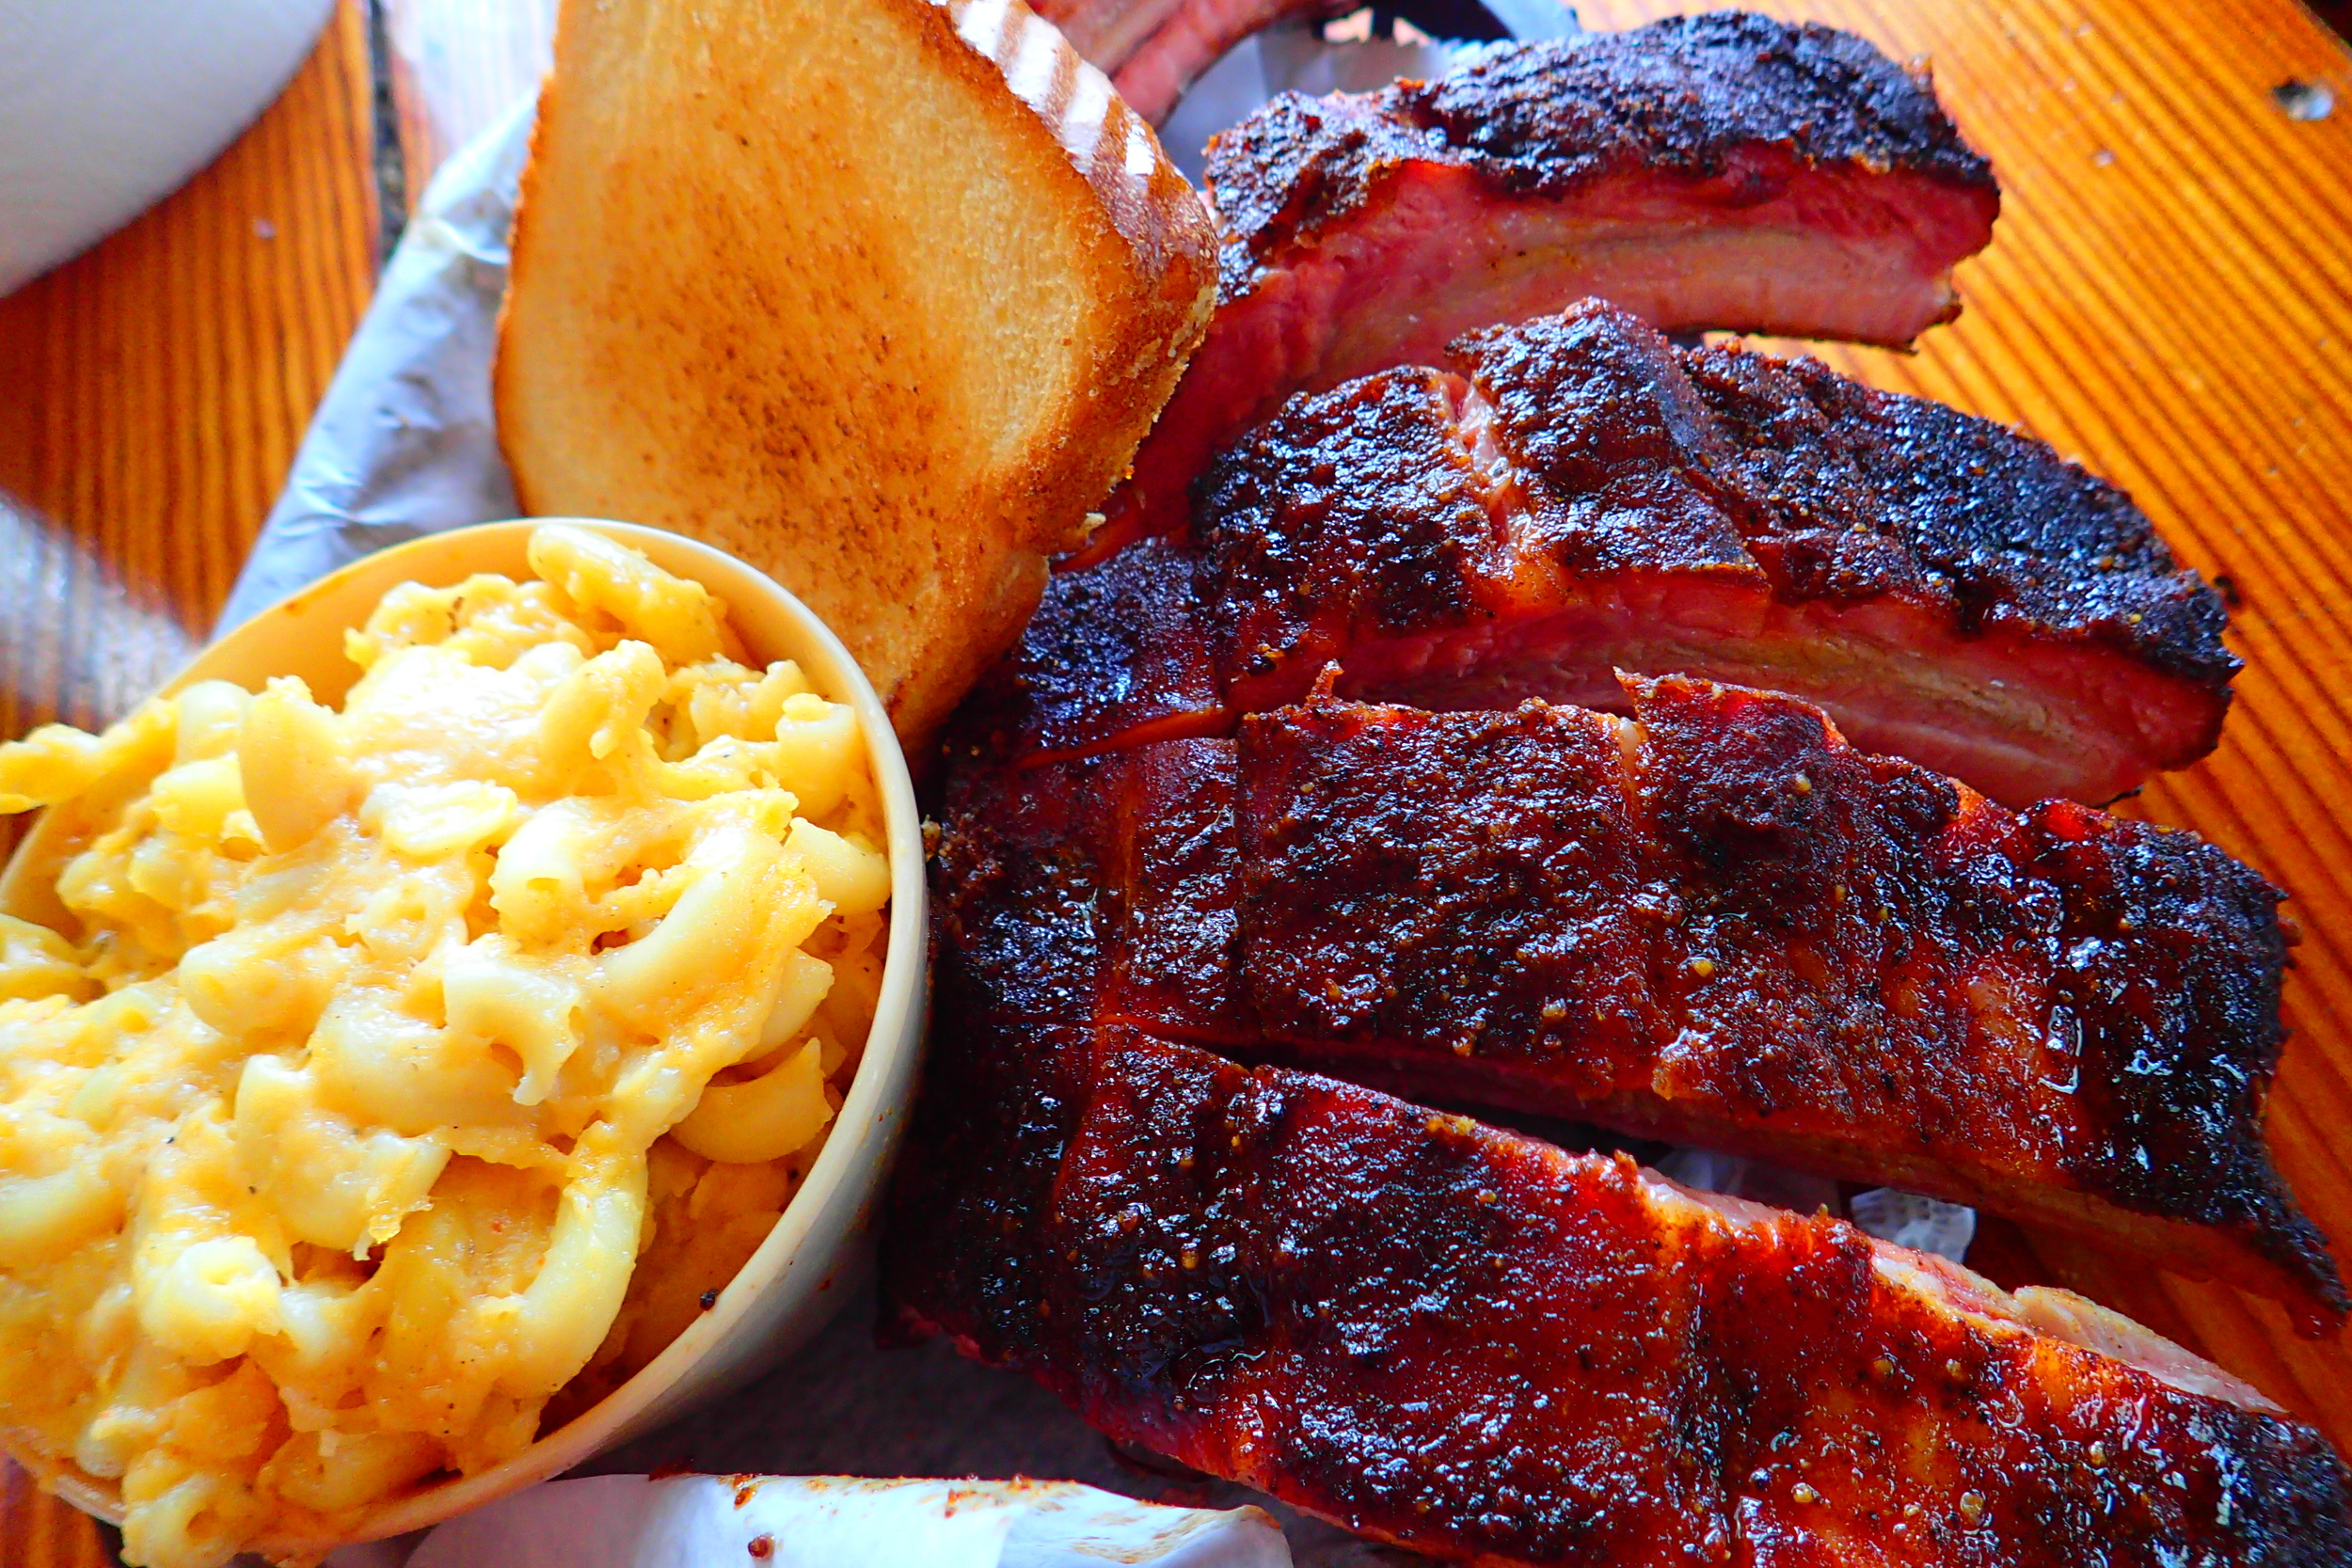 BBQ Ribs and a side of Mac at The Joint